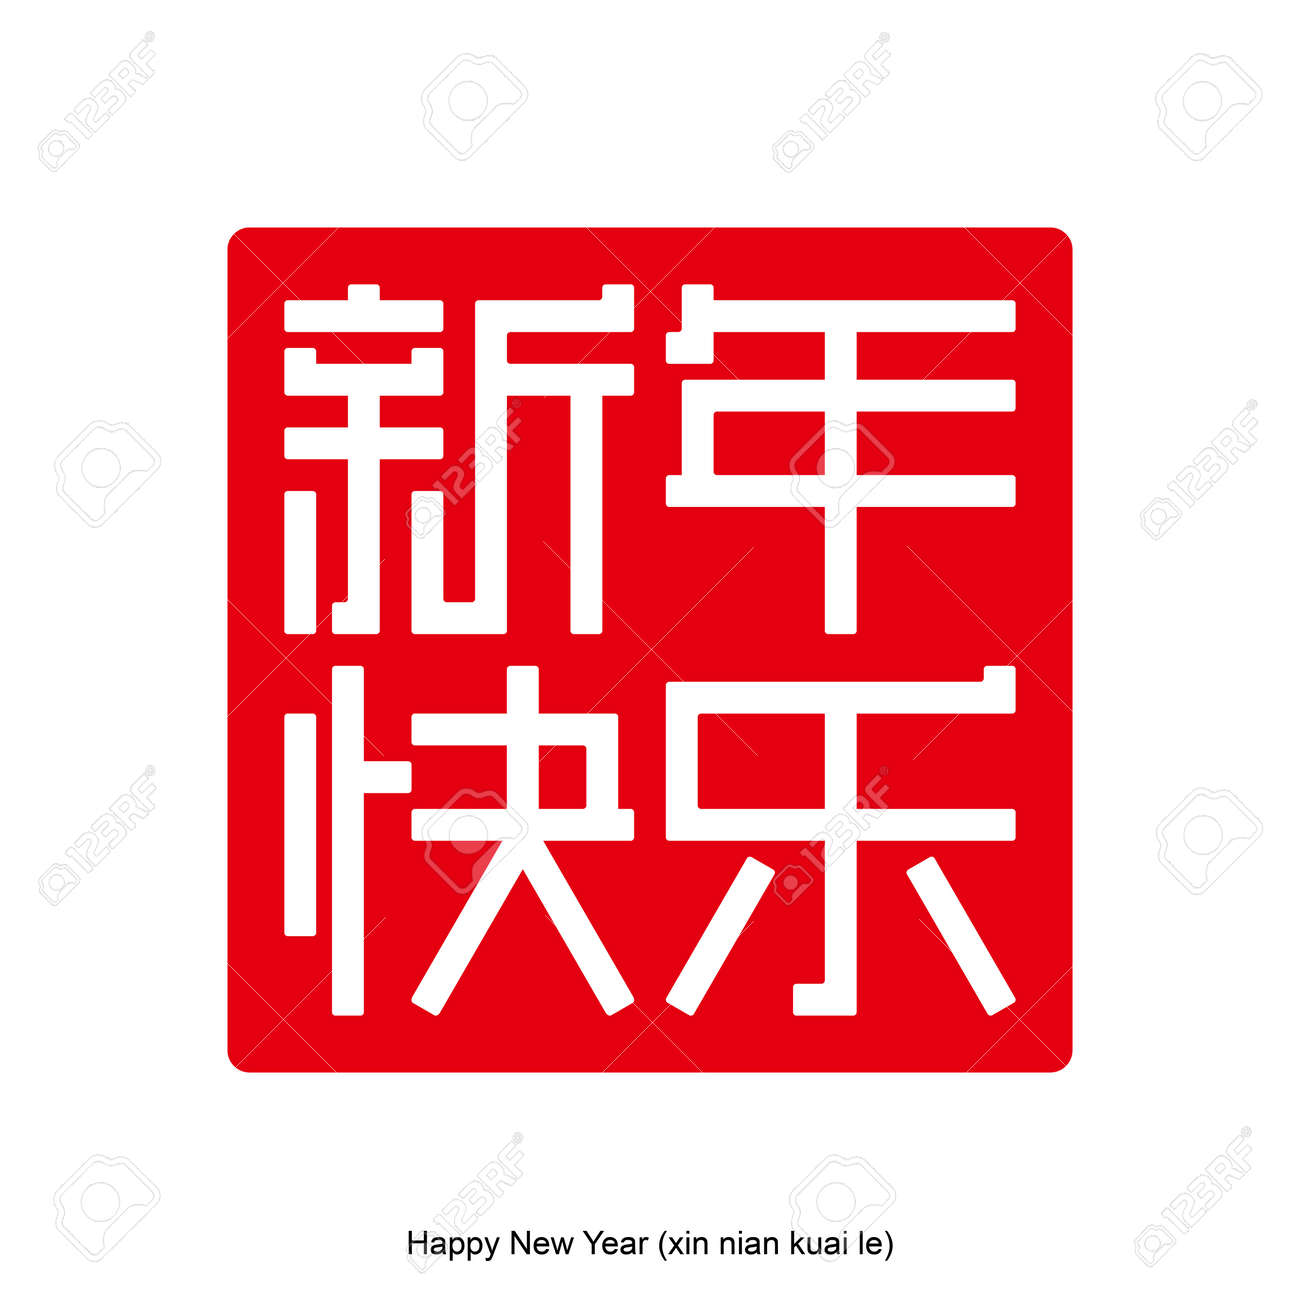 happy new year chinese character with square shape concept chinese traditional ornament design commonly